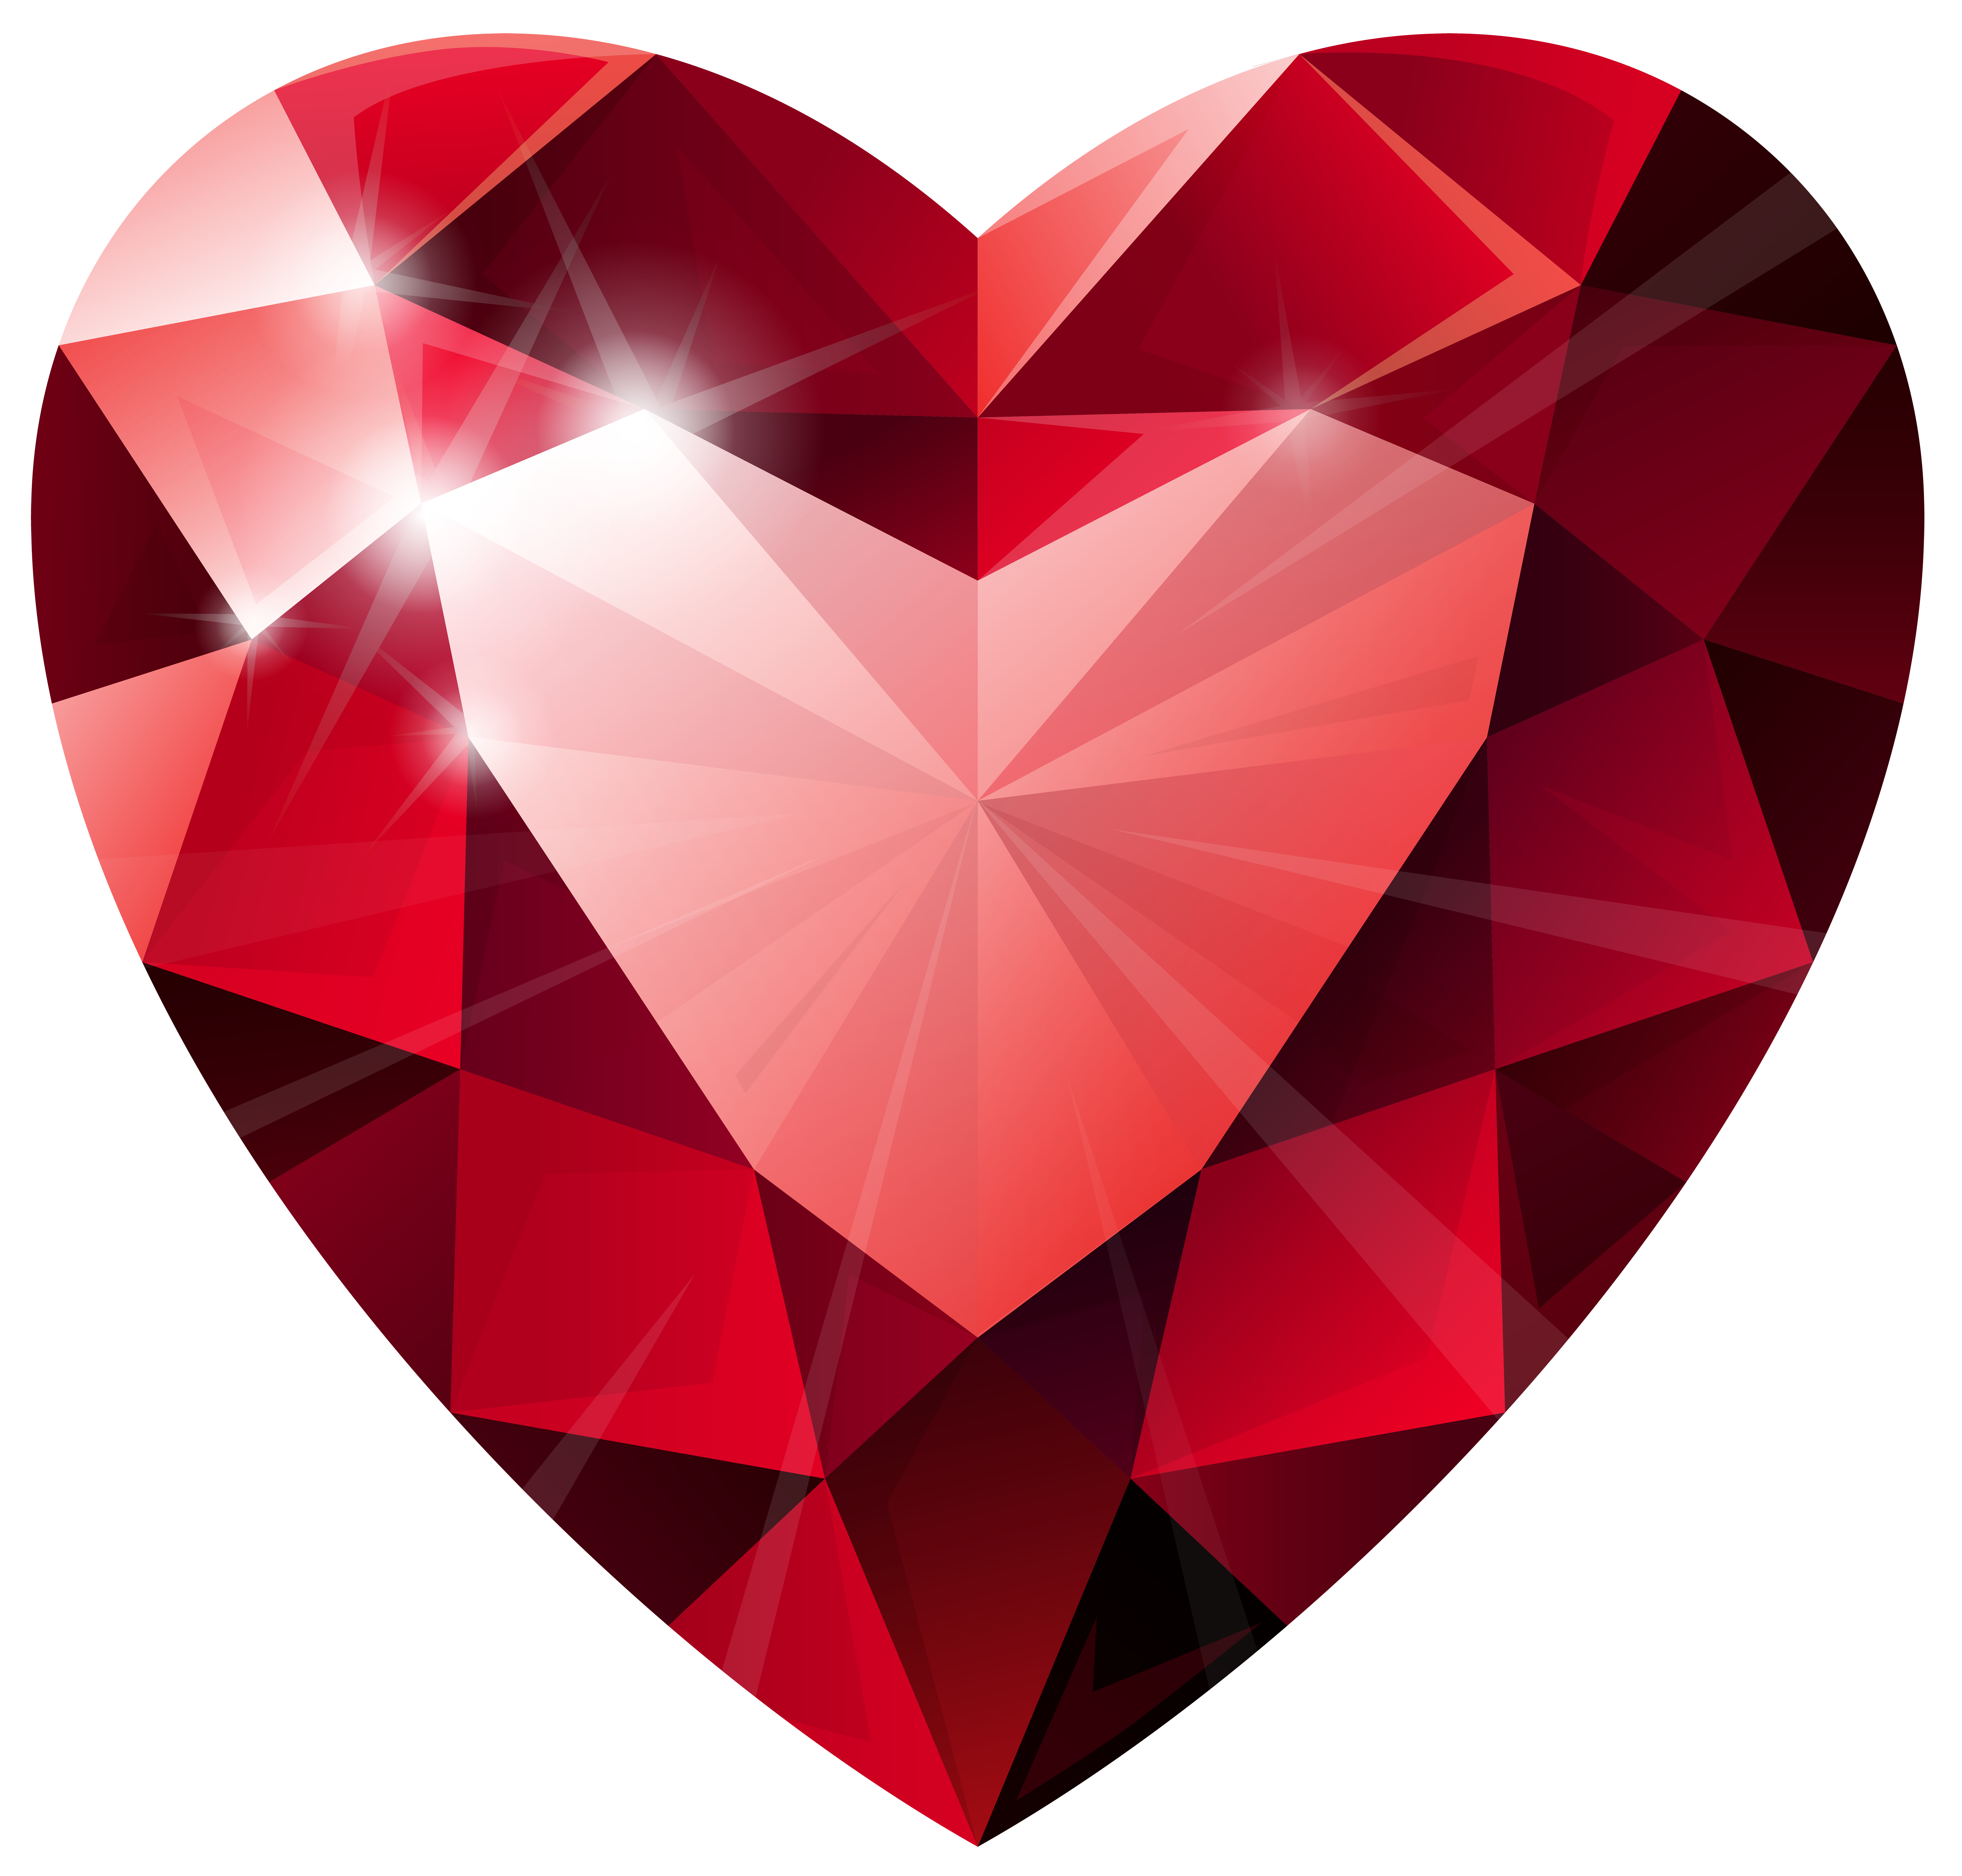 Crown and shaped diamond clipart svg transparent library Diamond Heart Transparent PNG Clip Art Image | drawing & art ... svg transparent library